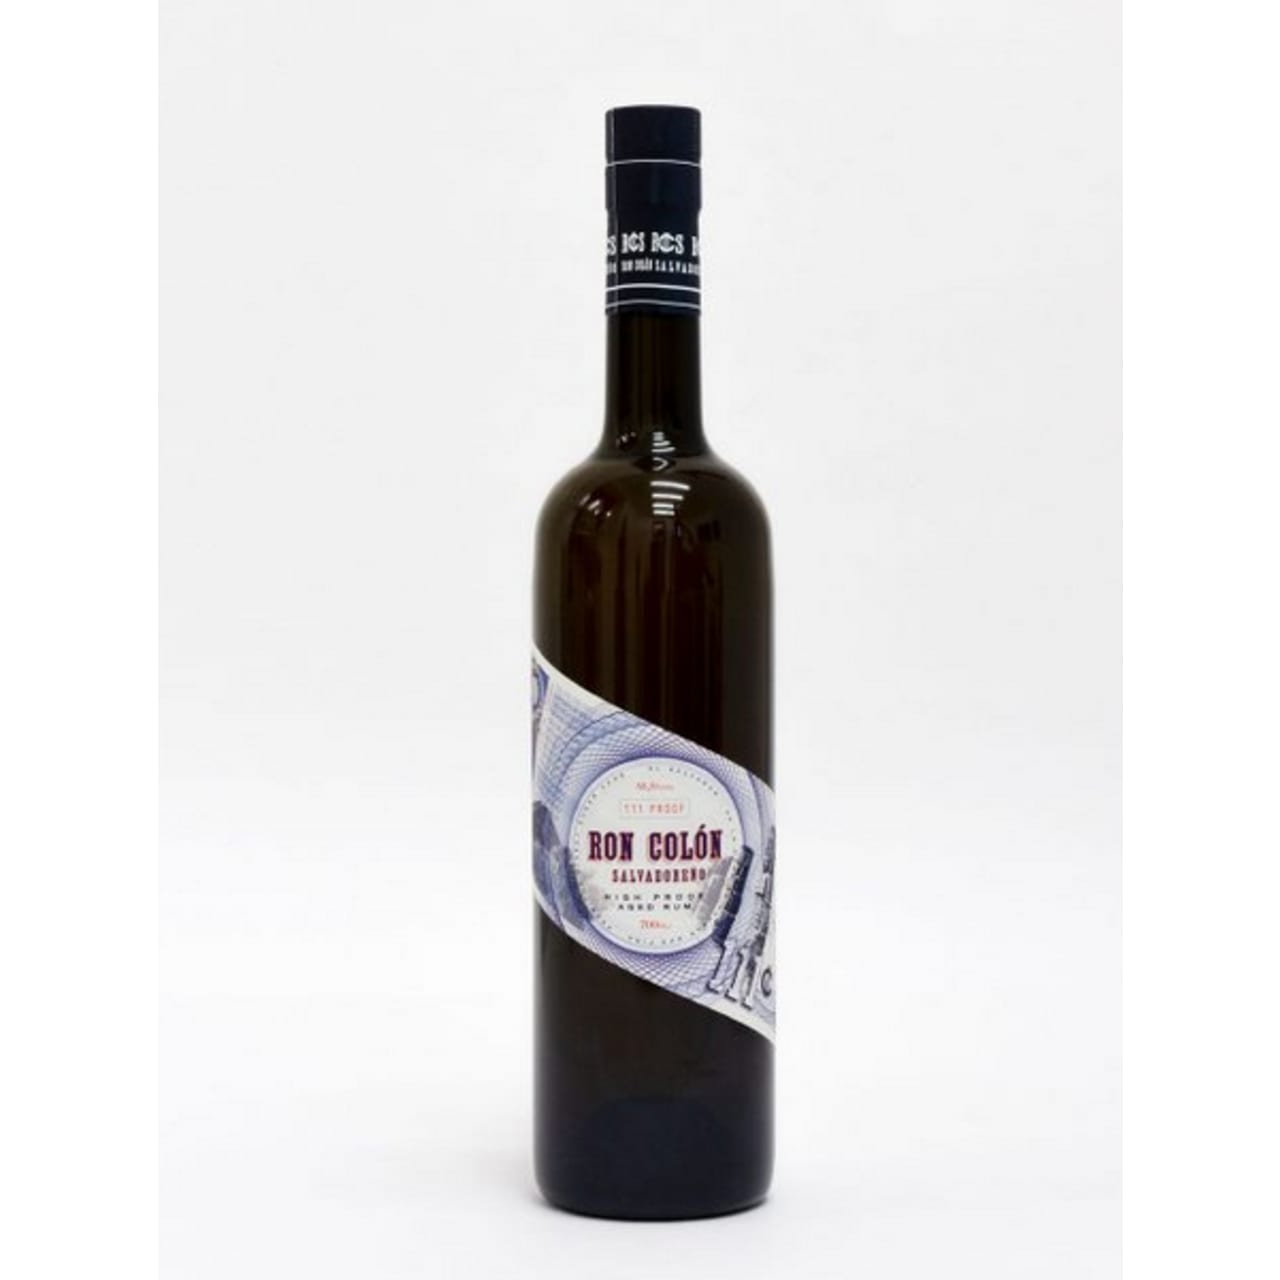 Product Image - Ron Colòn Salvadoreño High Proof Aged Rum